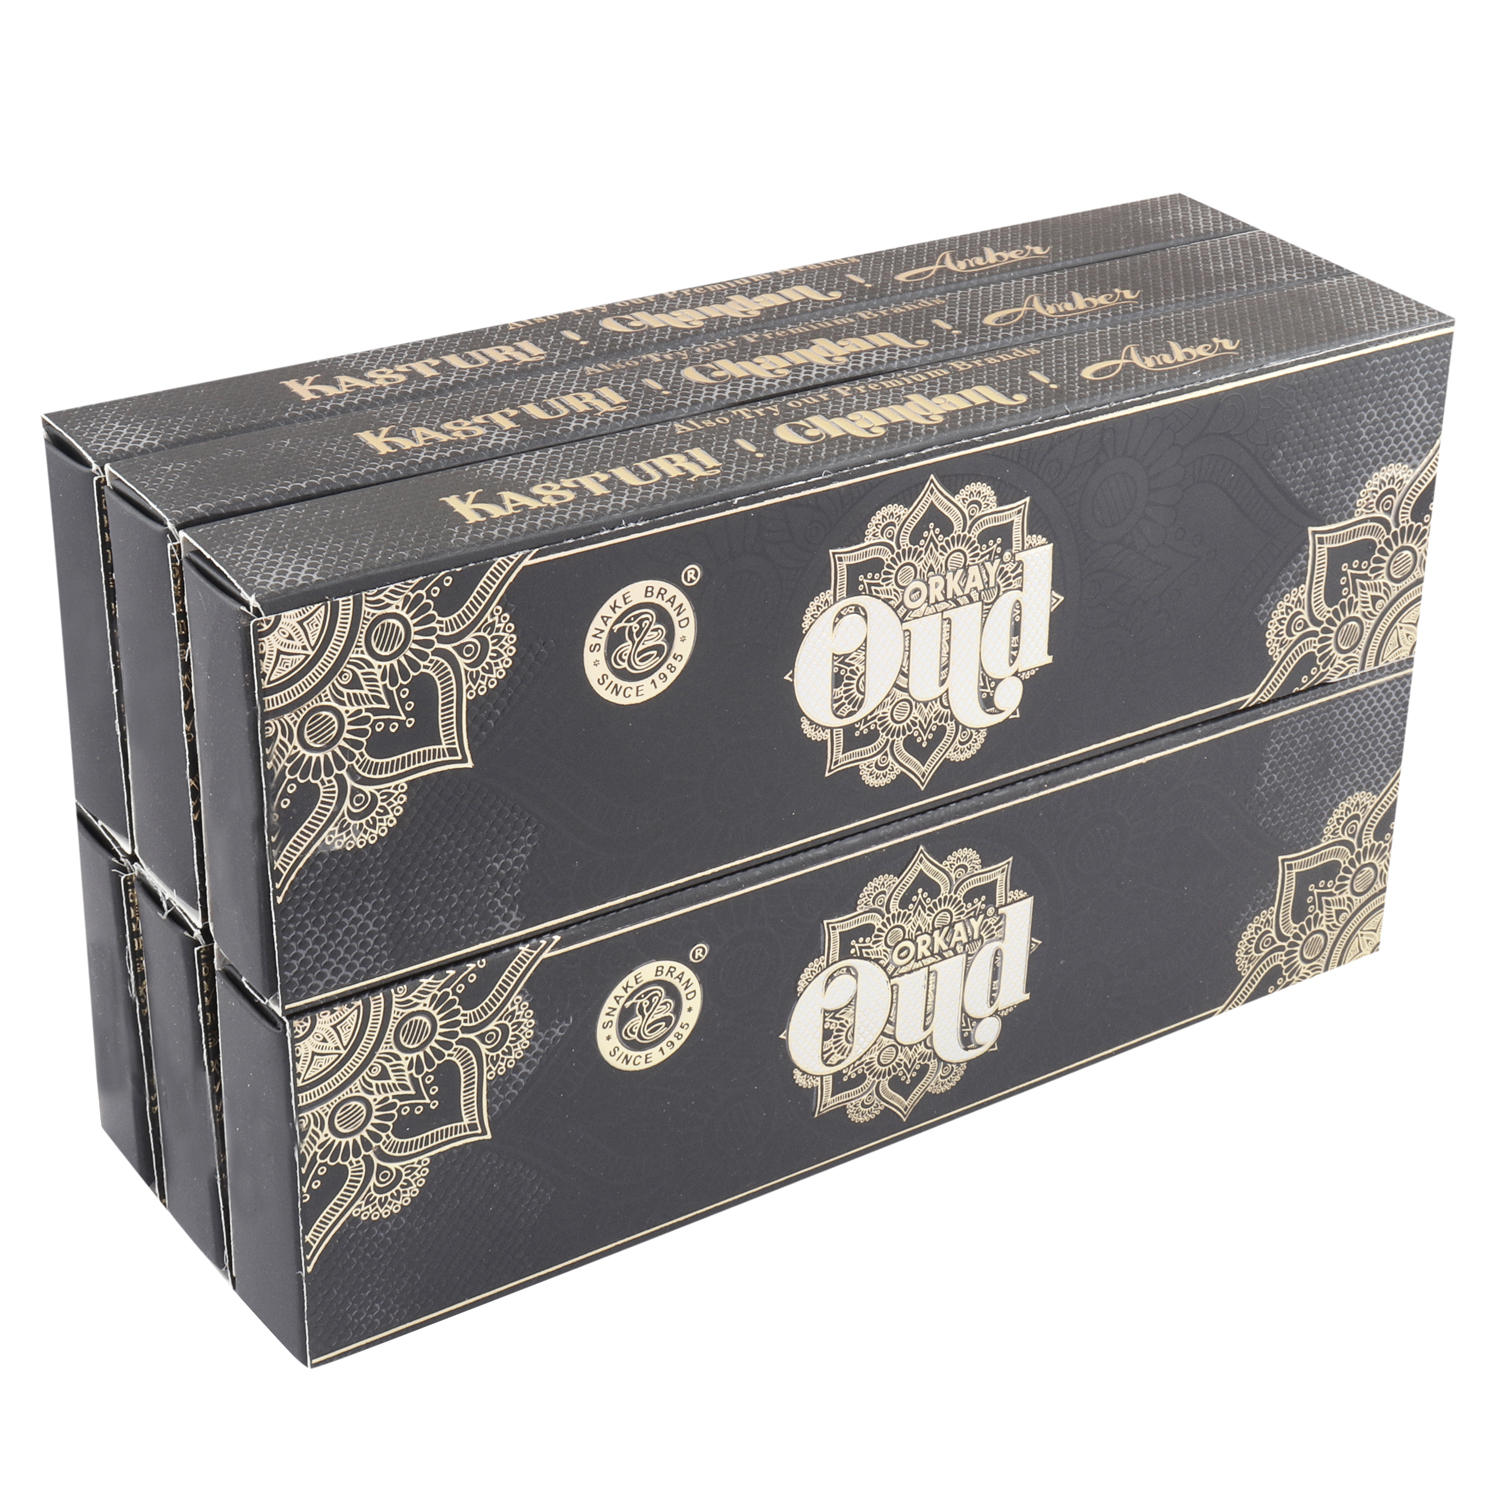 VEDIKA OUD 10 STICK PACK